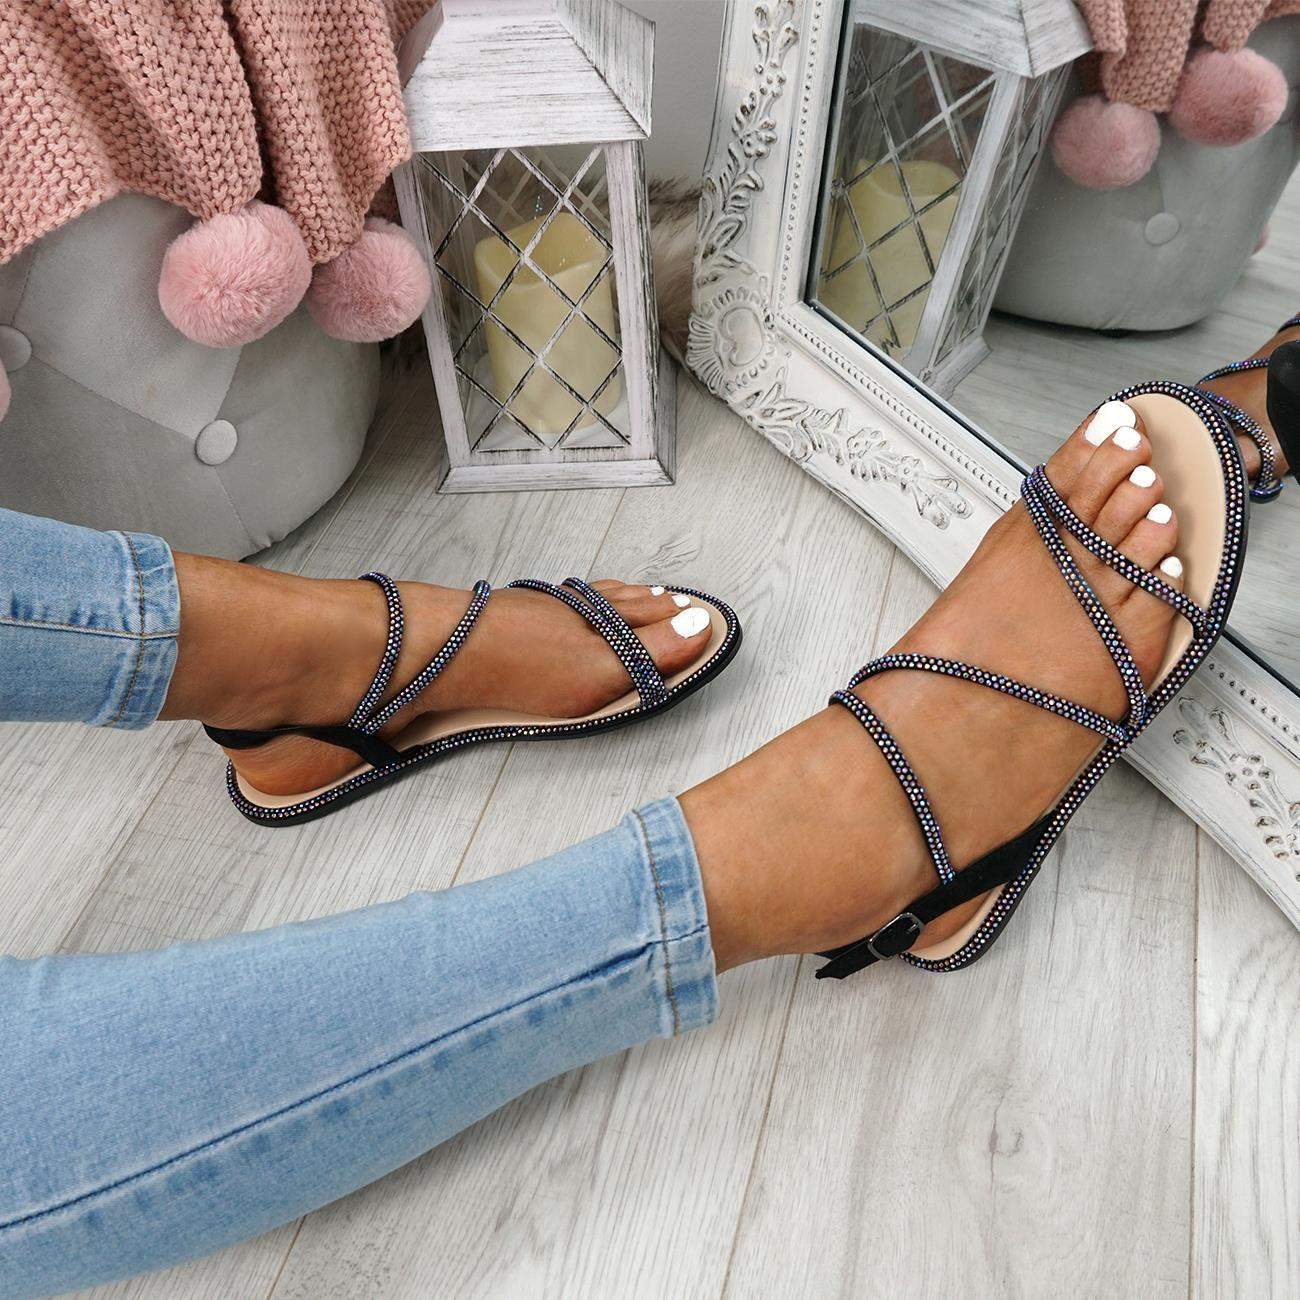 WOMENS-LADIES-STUDDED-ANKLE-STRAP-FLAT-SHOES-PARTY-CLUB-SANDALS-SHOES-SIZE-UK thumbnail 8